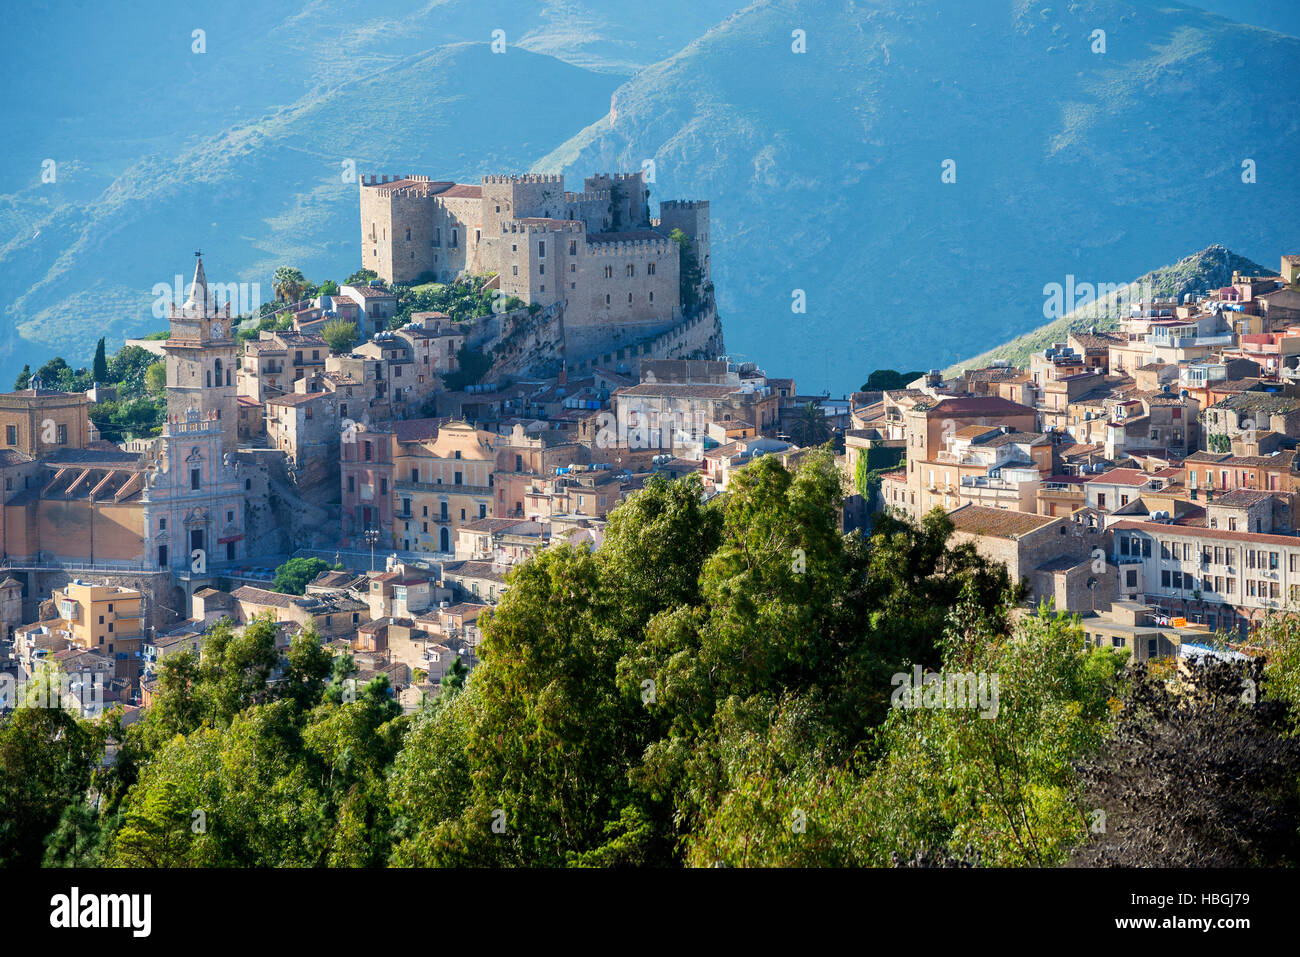 Château Caccamo, Caccamo, Sicile Photo Stock